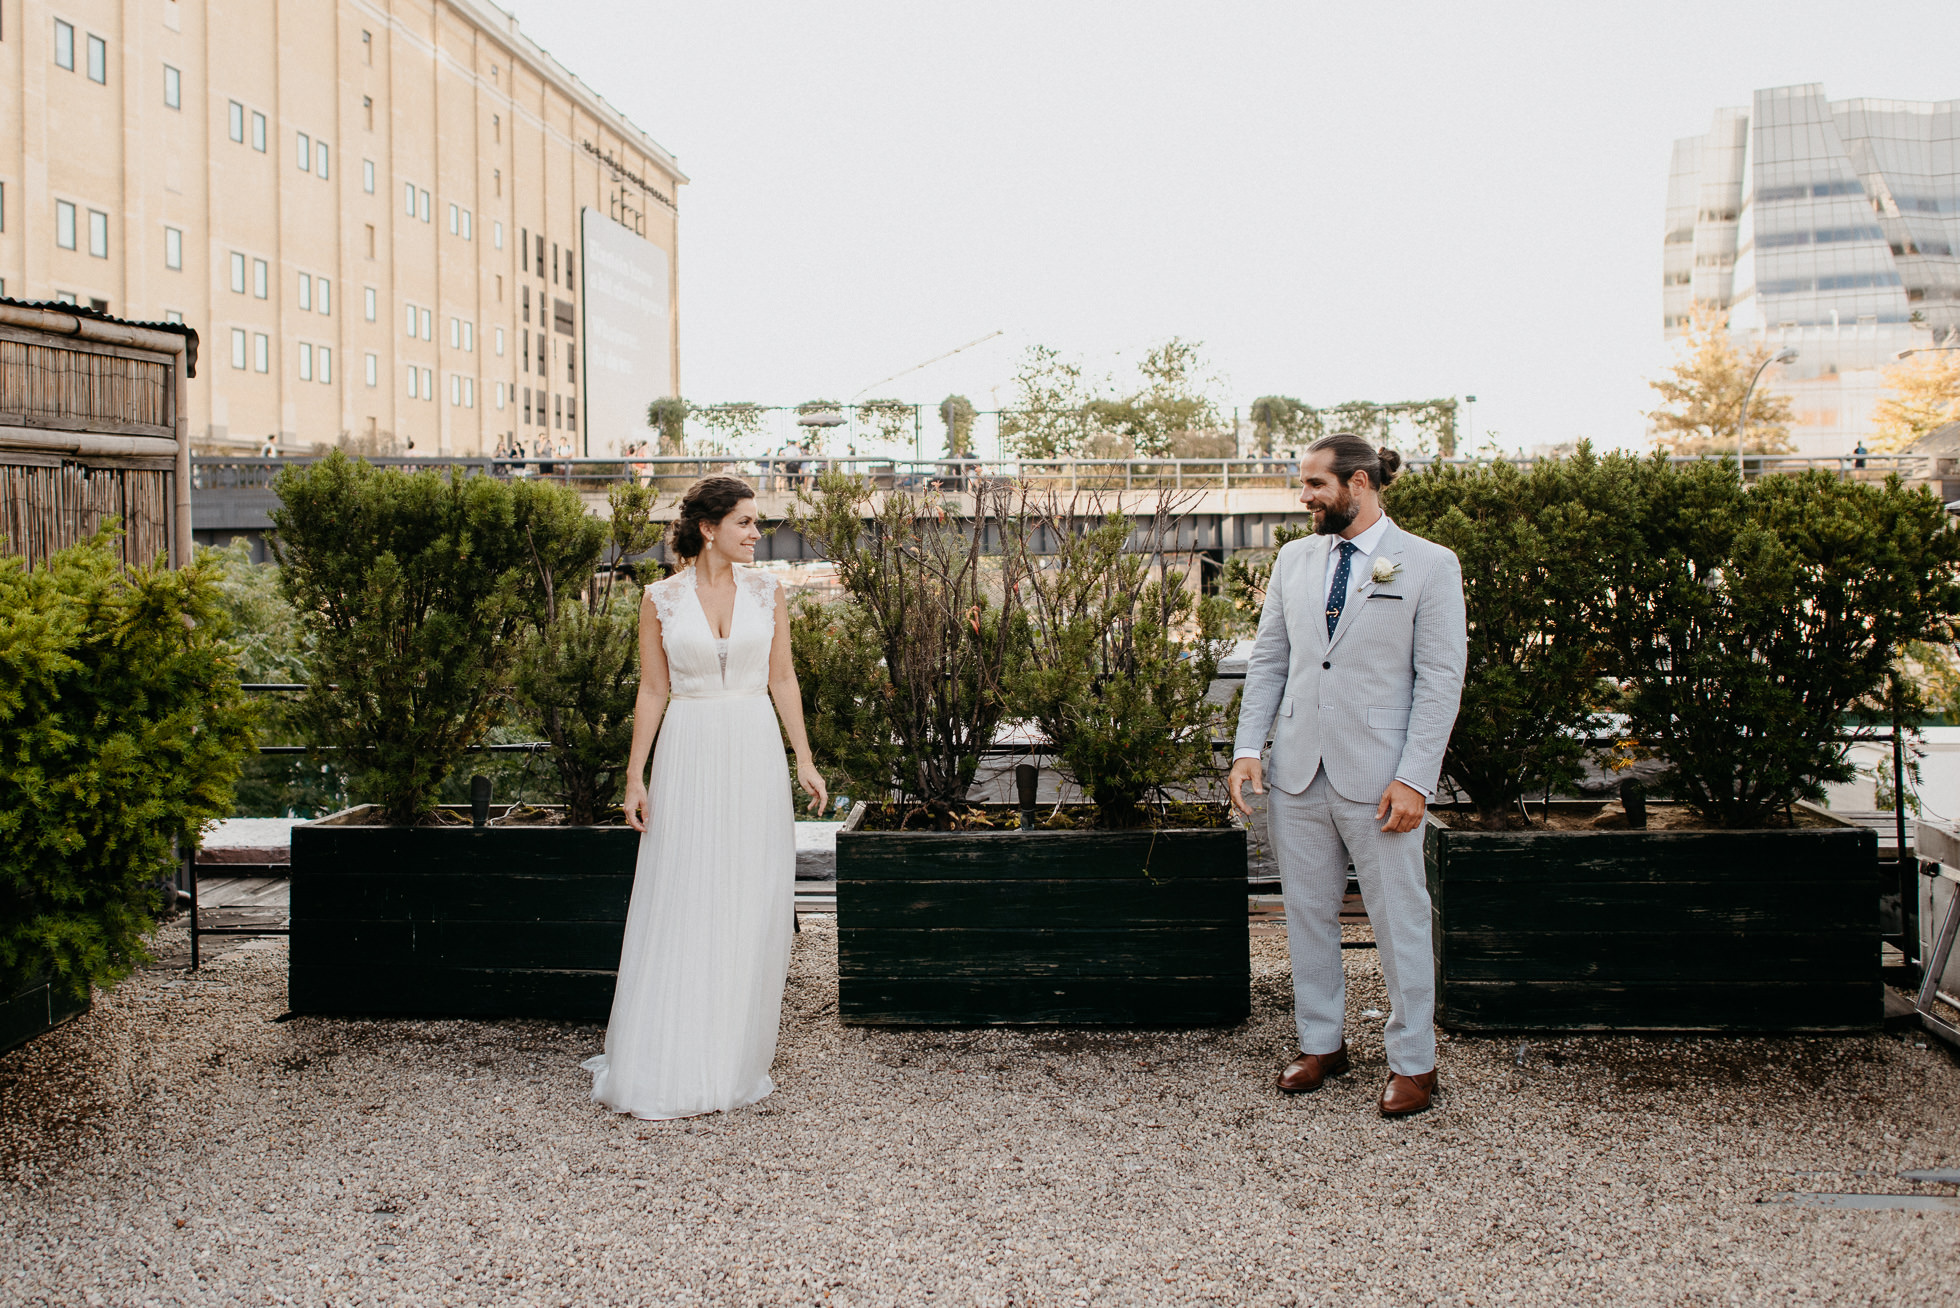 NYC rooftop wedding photos